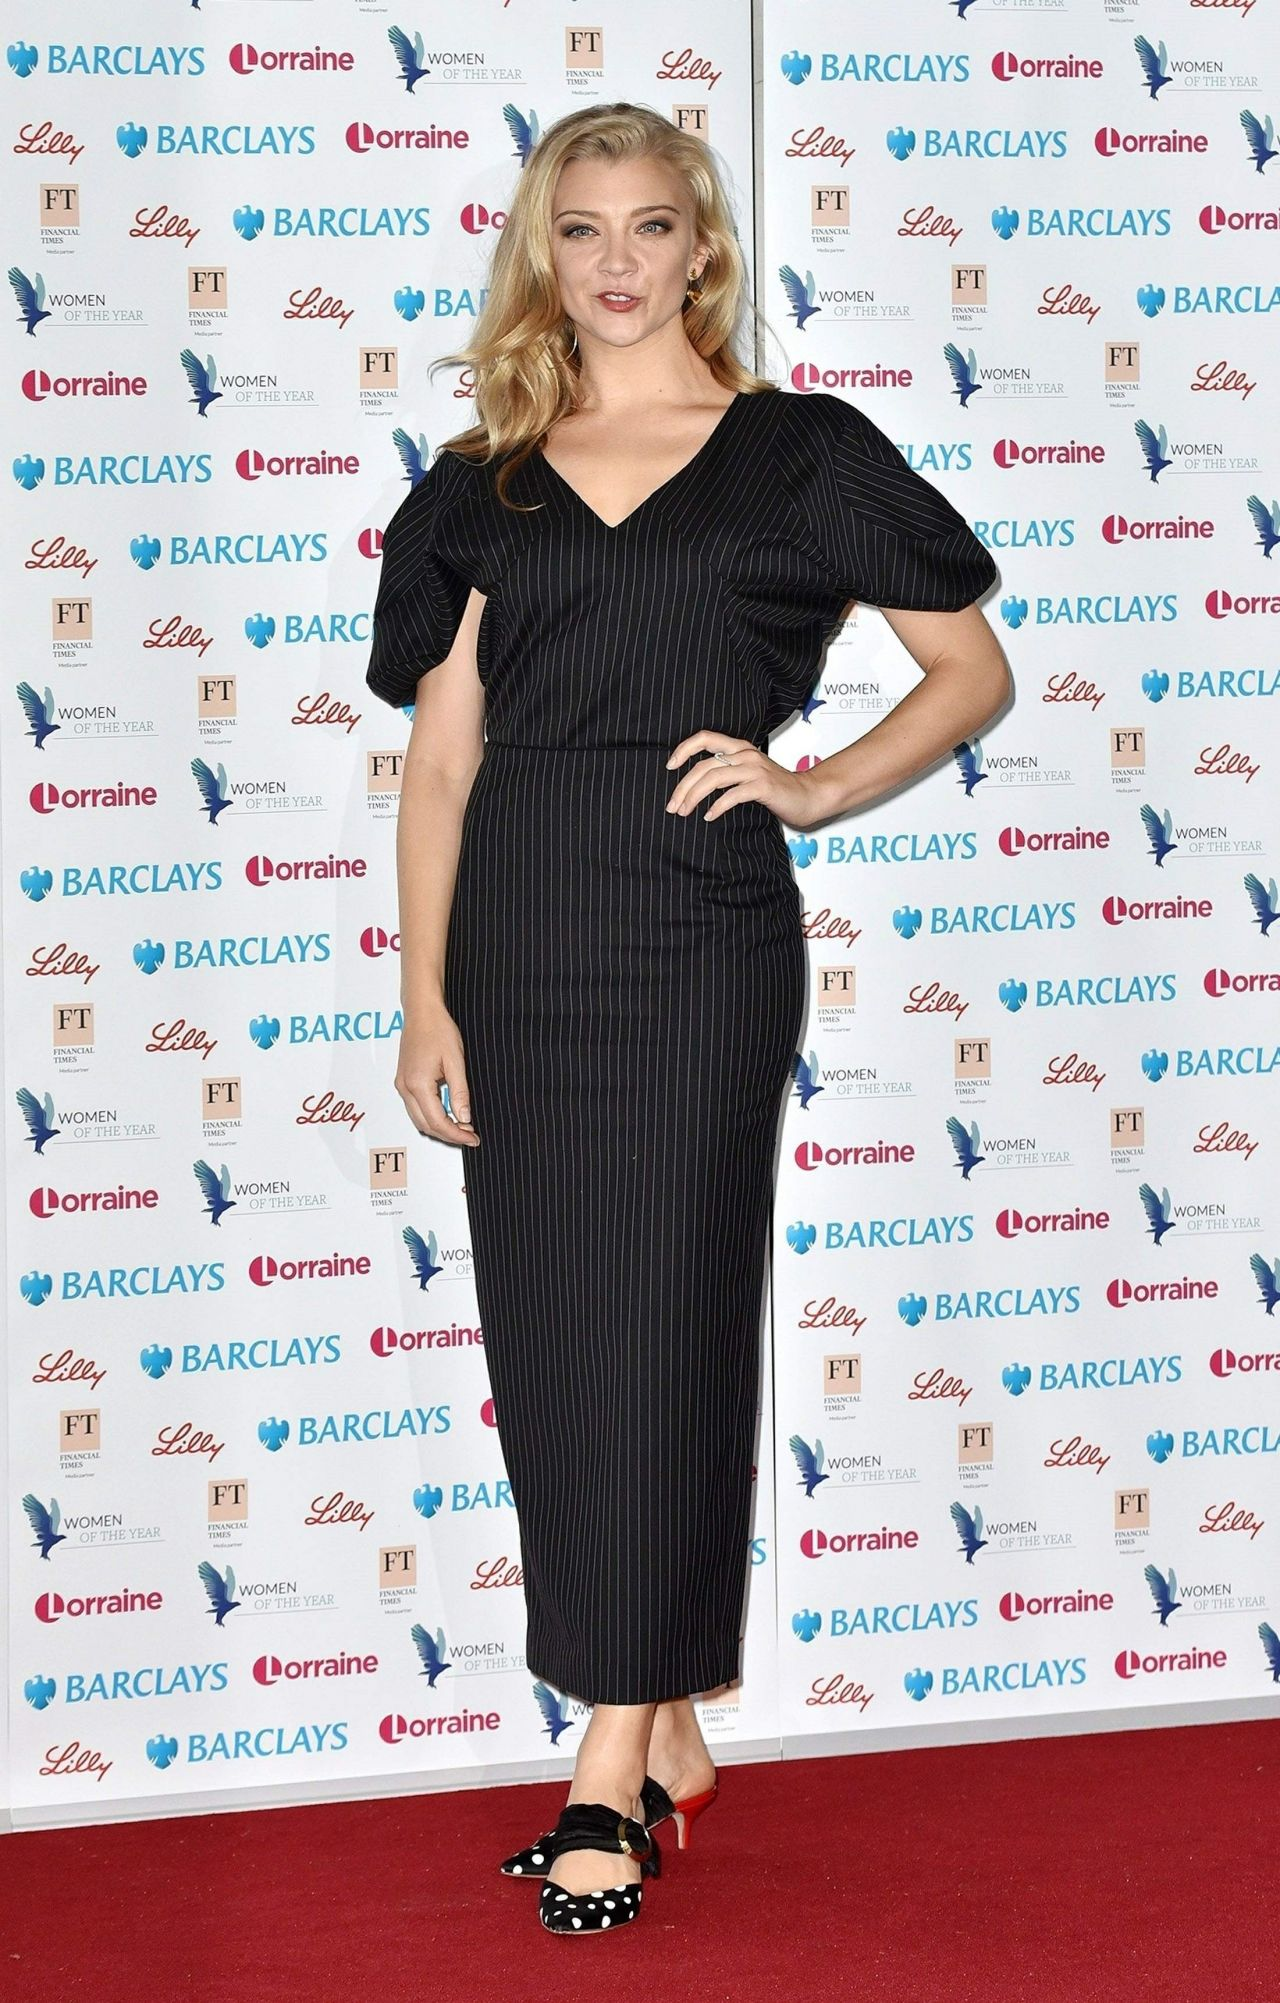 https://celebmafia.com/wp-content/uploads/2018/10/natalie-dormer-the-women-of-the-year-lunch-and-awards-2018-in-london-8.jpg